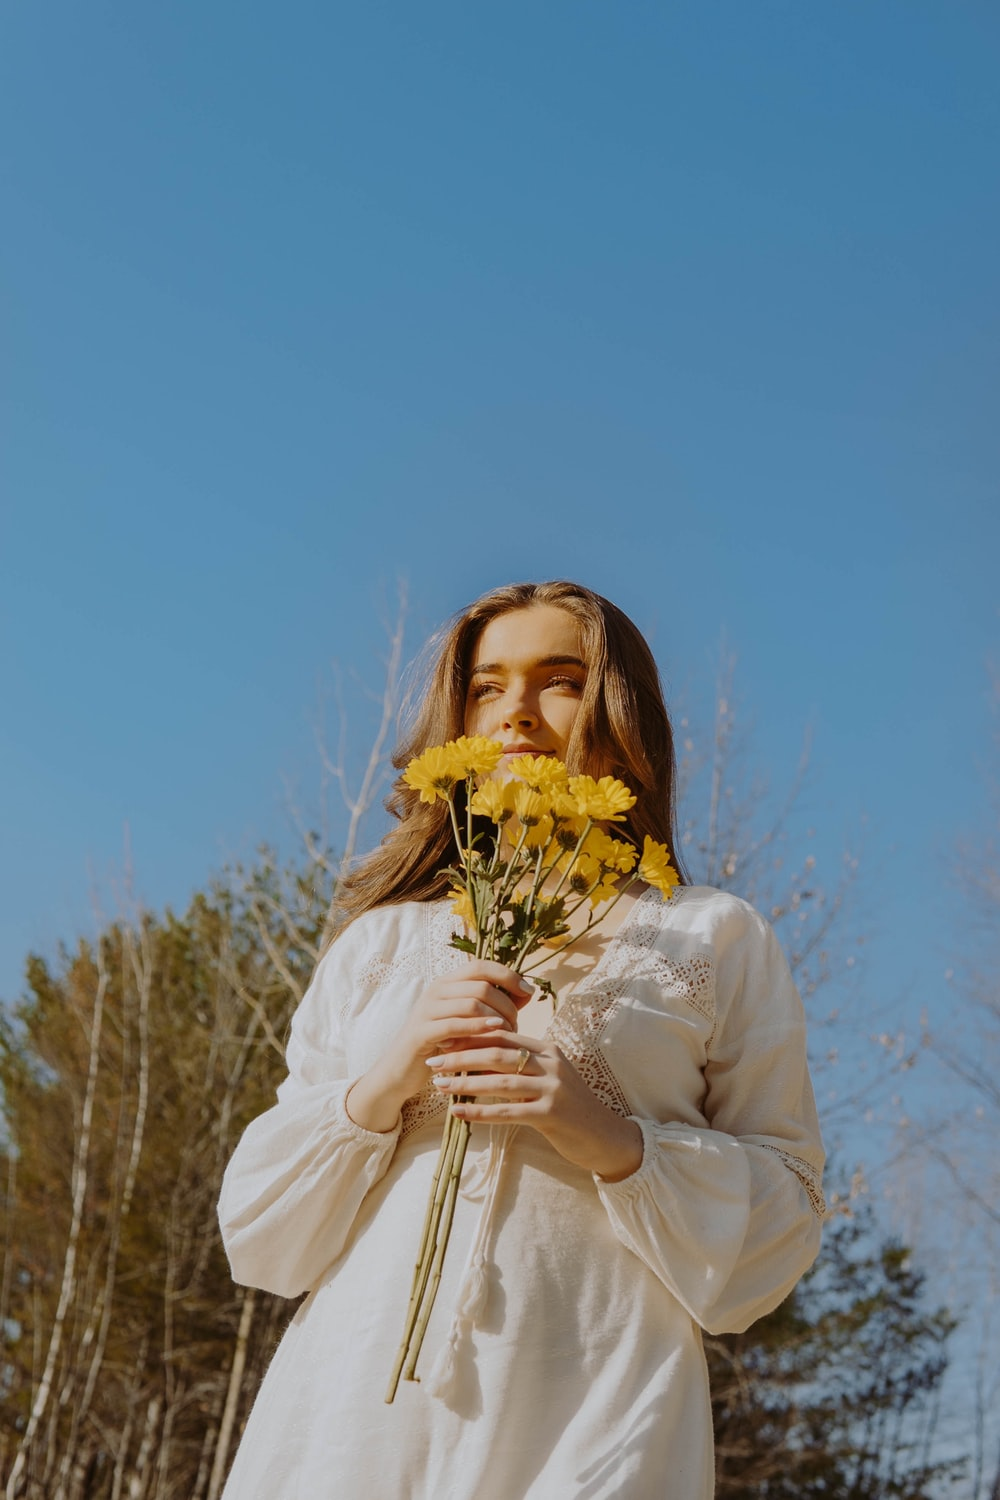 woman in white long sleeve shirt holding yellow flowers